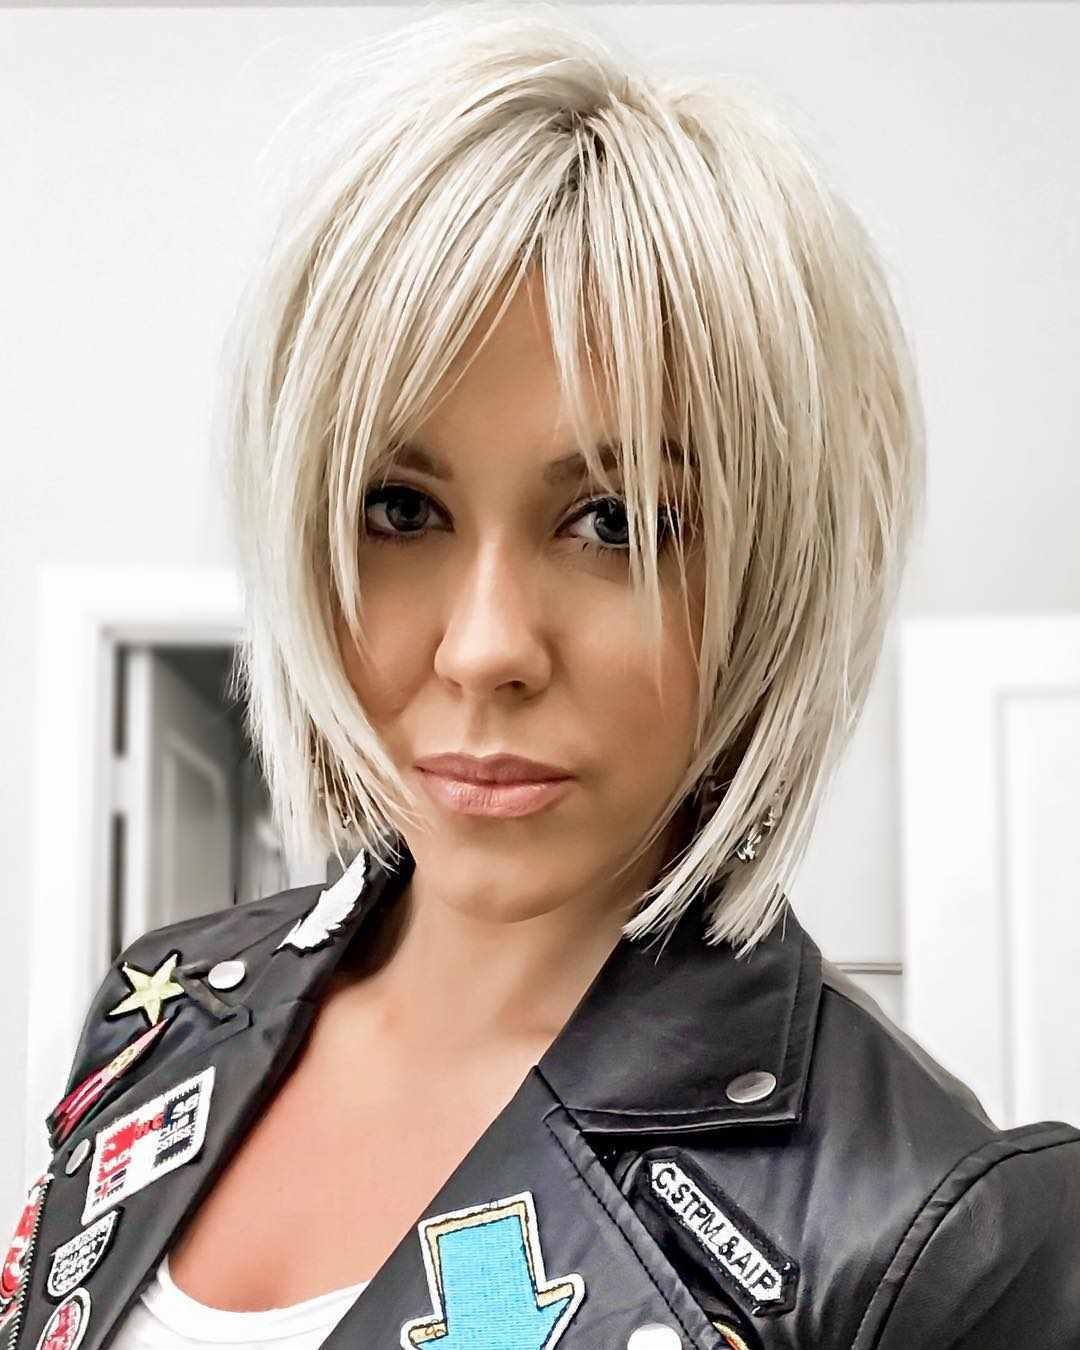 New The Best 60 Most Popular Pixie And Bob Short Hairstyles 2019 Ideas With Pictures